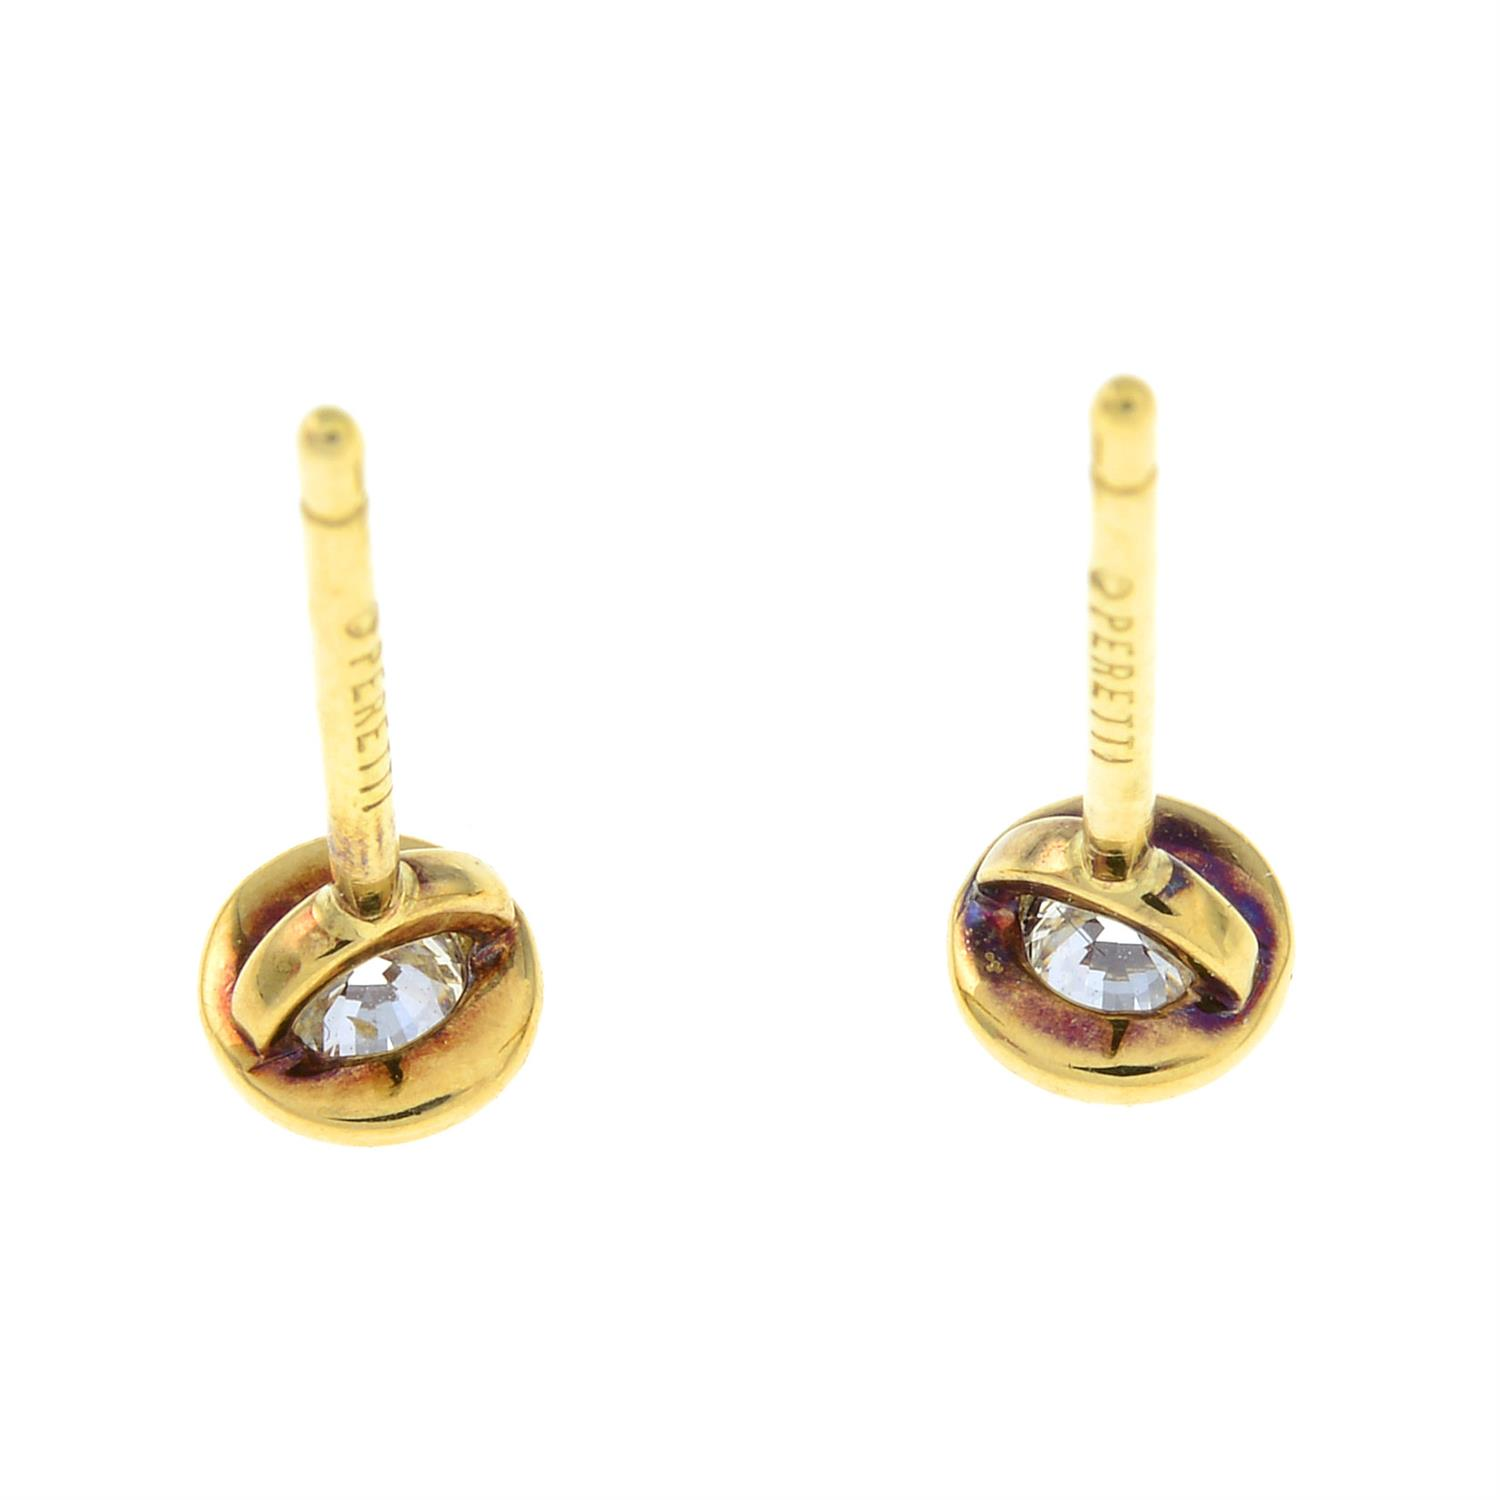 A pair of 'Diamonds by The Yard' earrings, by Elsa Peretti, for Tiffany & Co. - Image 3 of 4